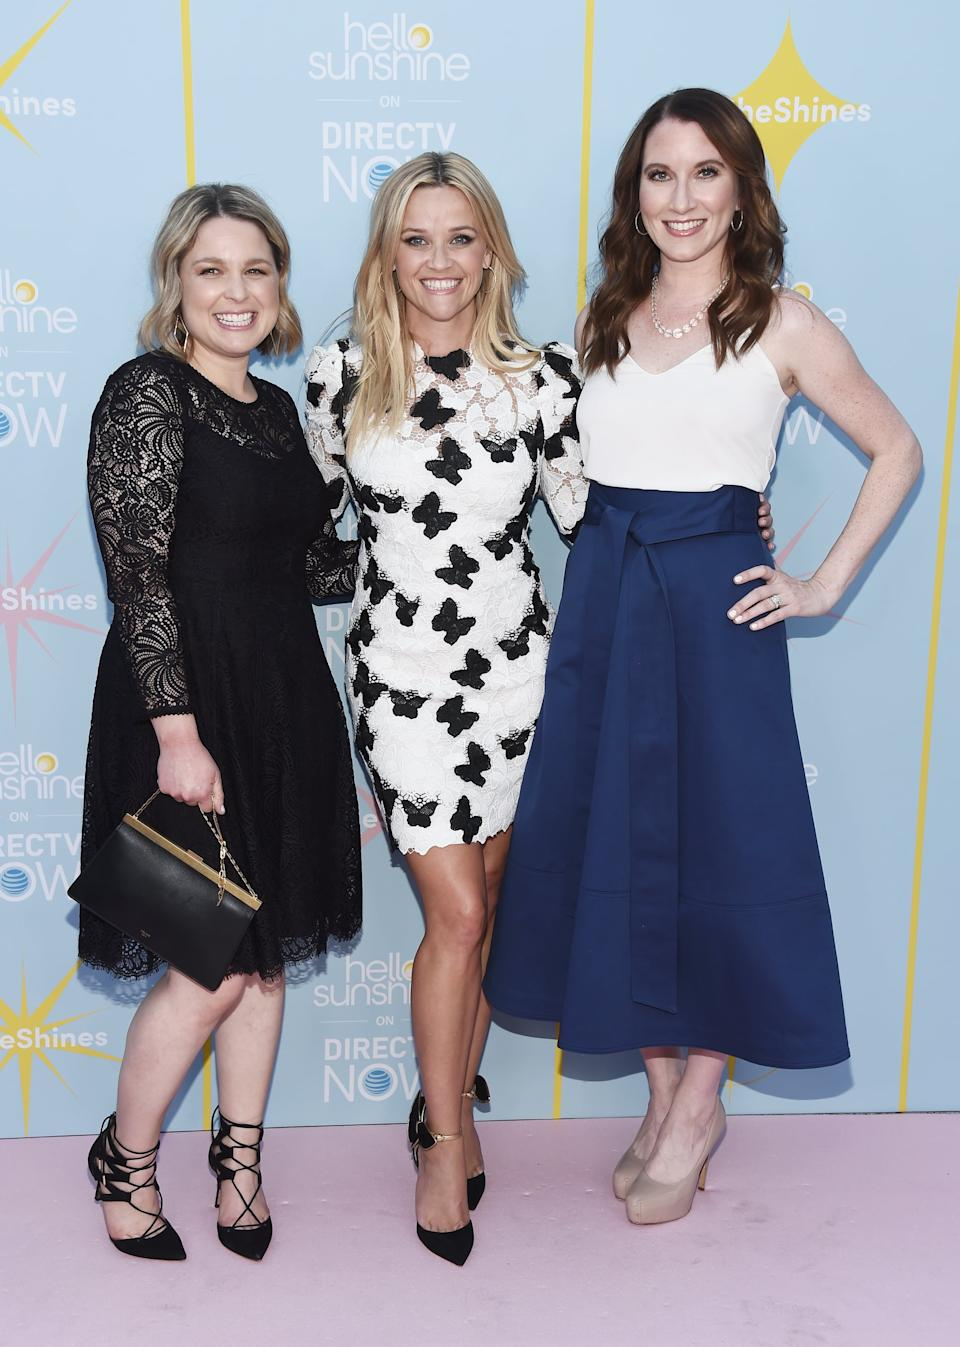 LOS ANGELES, CA - AUGUST 06: (L-R) Author Joanna Teplin, actress Reese Witherspoon and author Clea Shearer arrive at the AT&T & Hello Sunshine launch celebration of